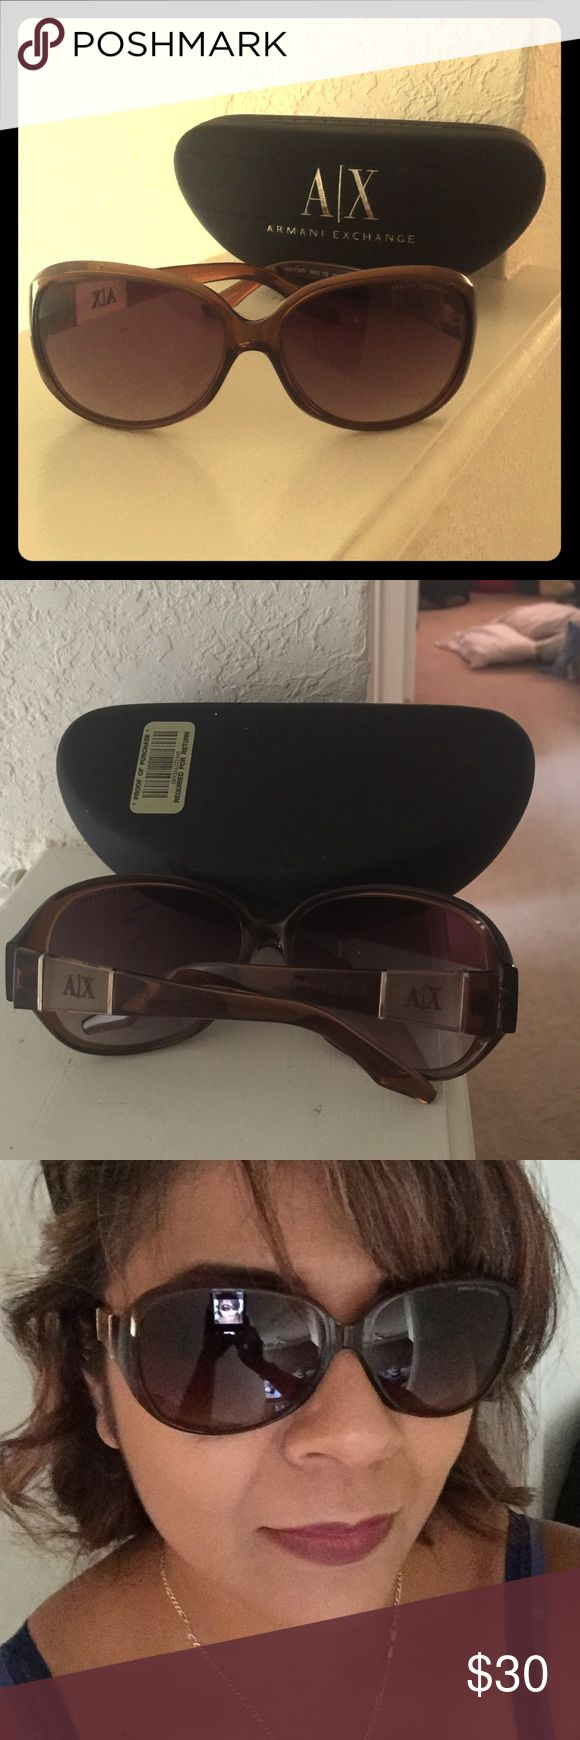 A/X Armani Exchange Sunglasses Armani Sunnies. Have had for a couple years and they have tiny bit of normal scratches on lenses but nothing that impairs vision.  Also scratches are not visible unless you look for them, but I need to mention. They come in original case. Armani Exchange Accessories Sunglasses